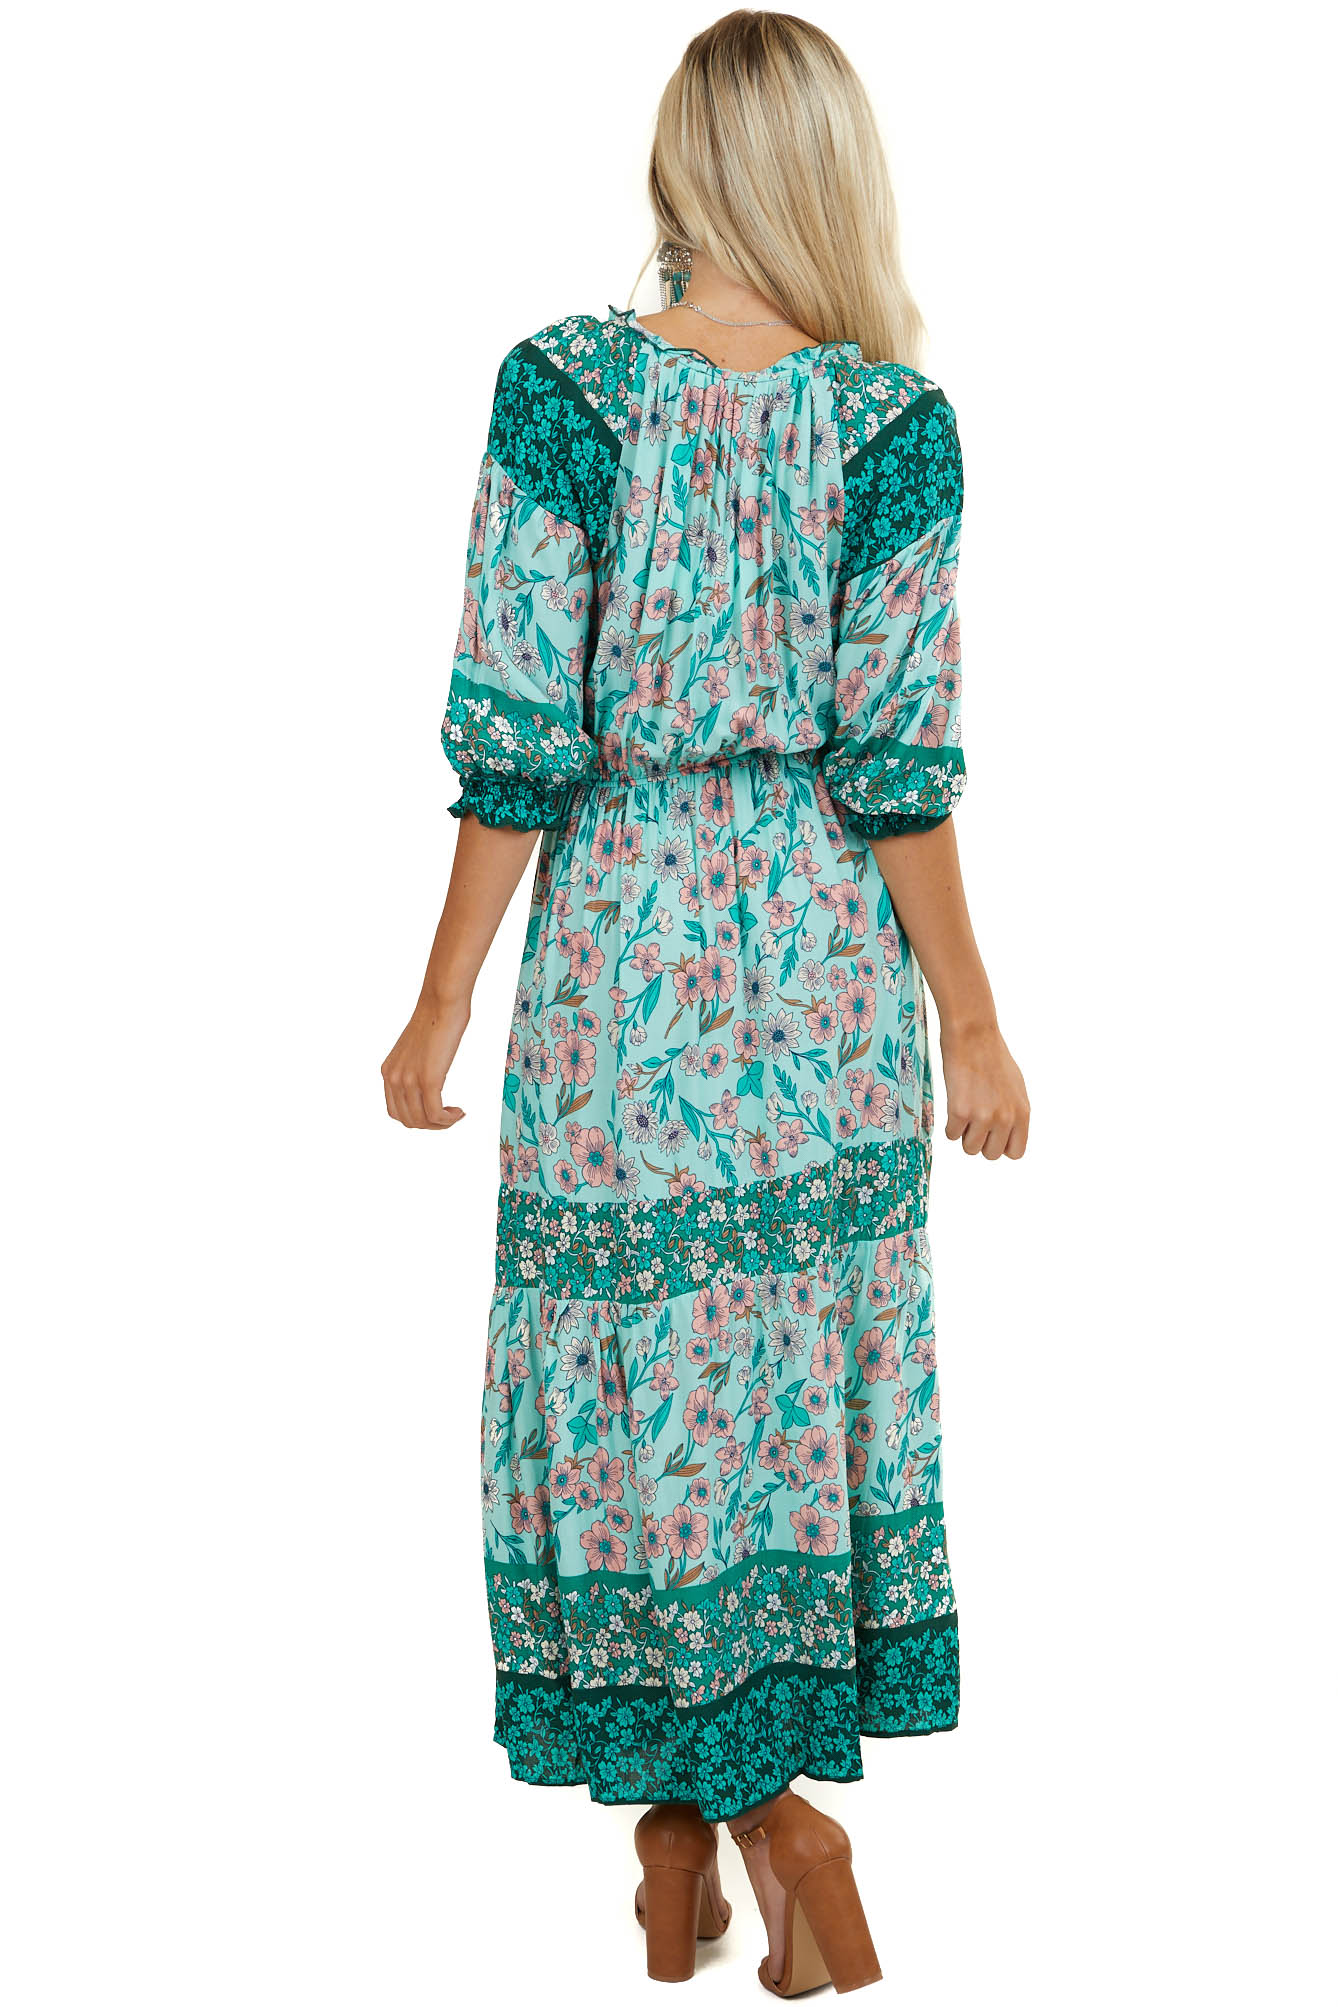 Seafoam Floral 3/4 Sleeve Maxi Dress with Ruffle Details